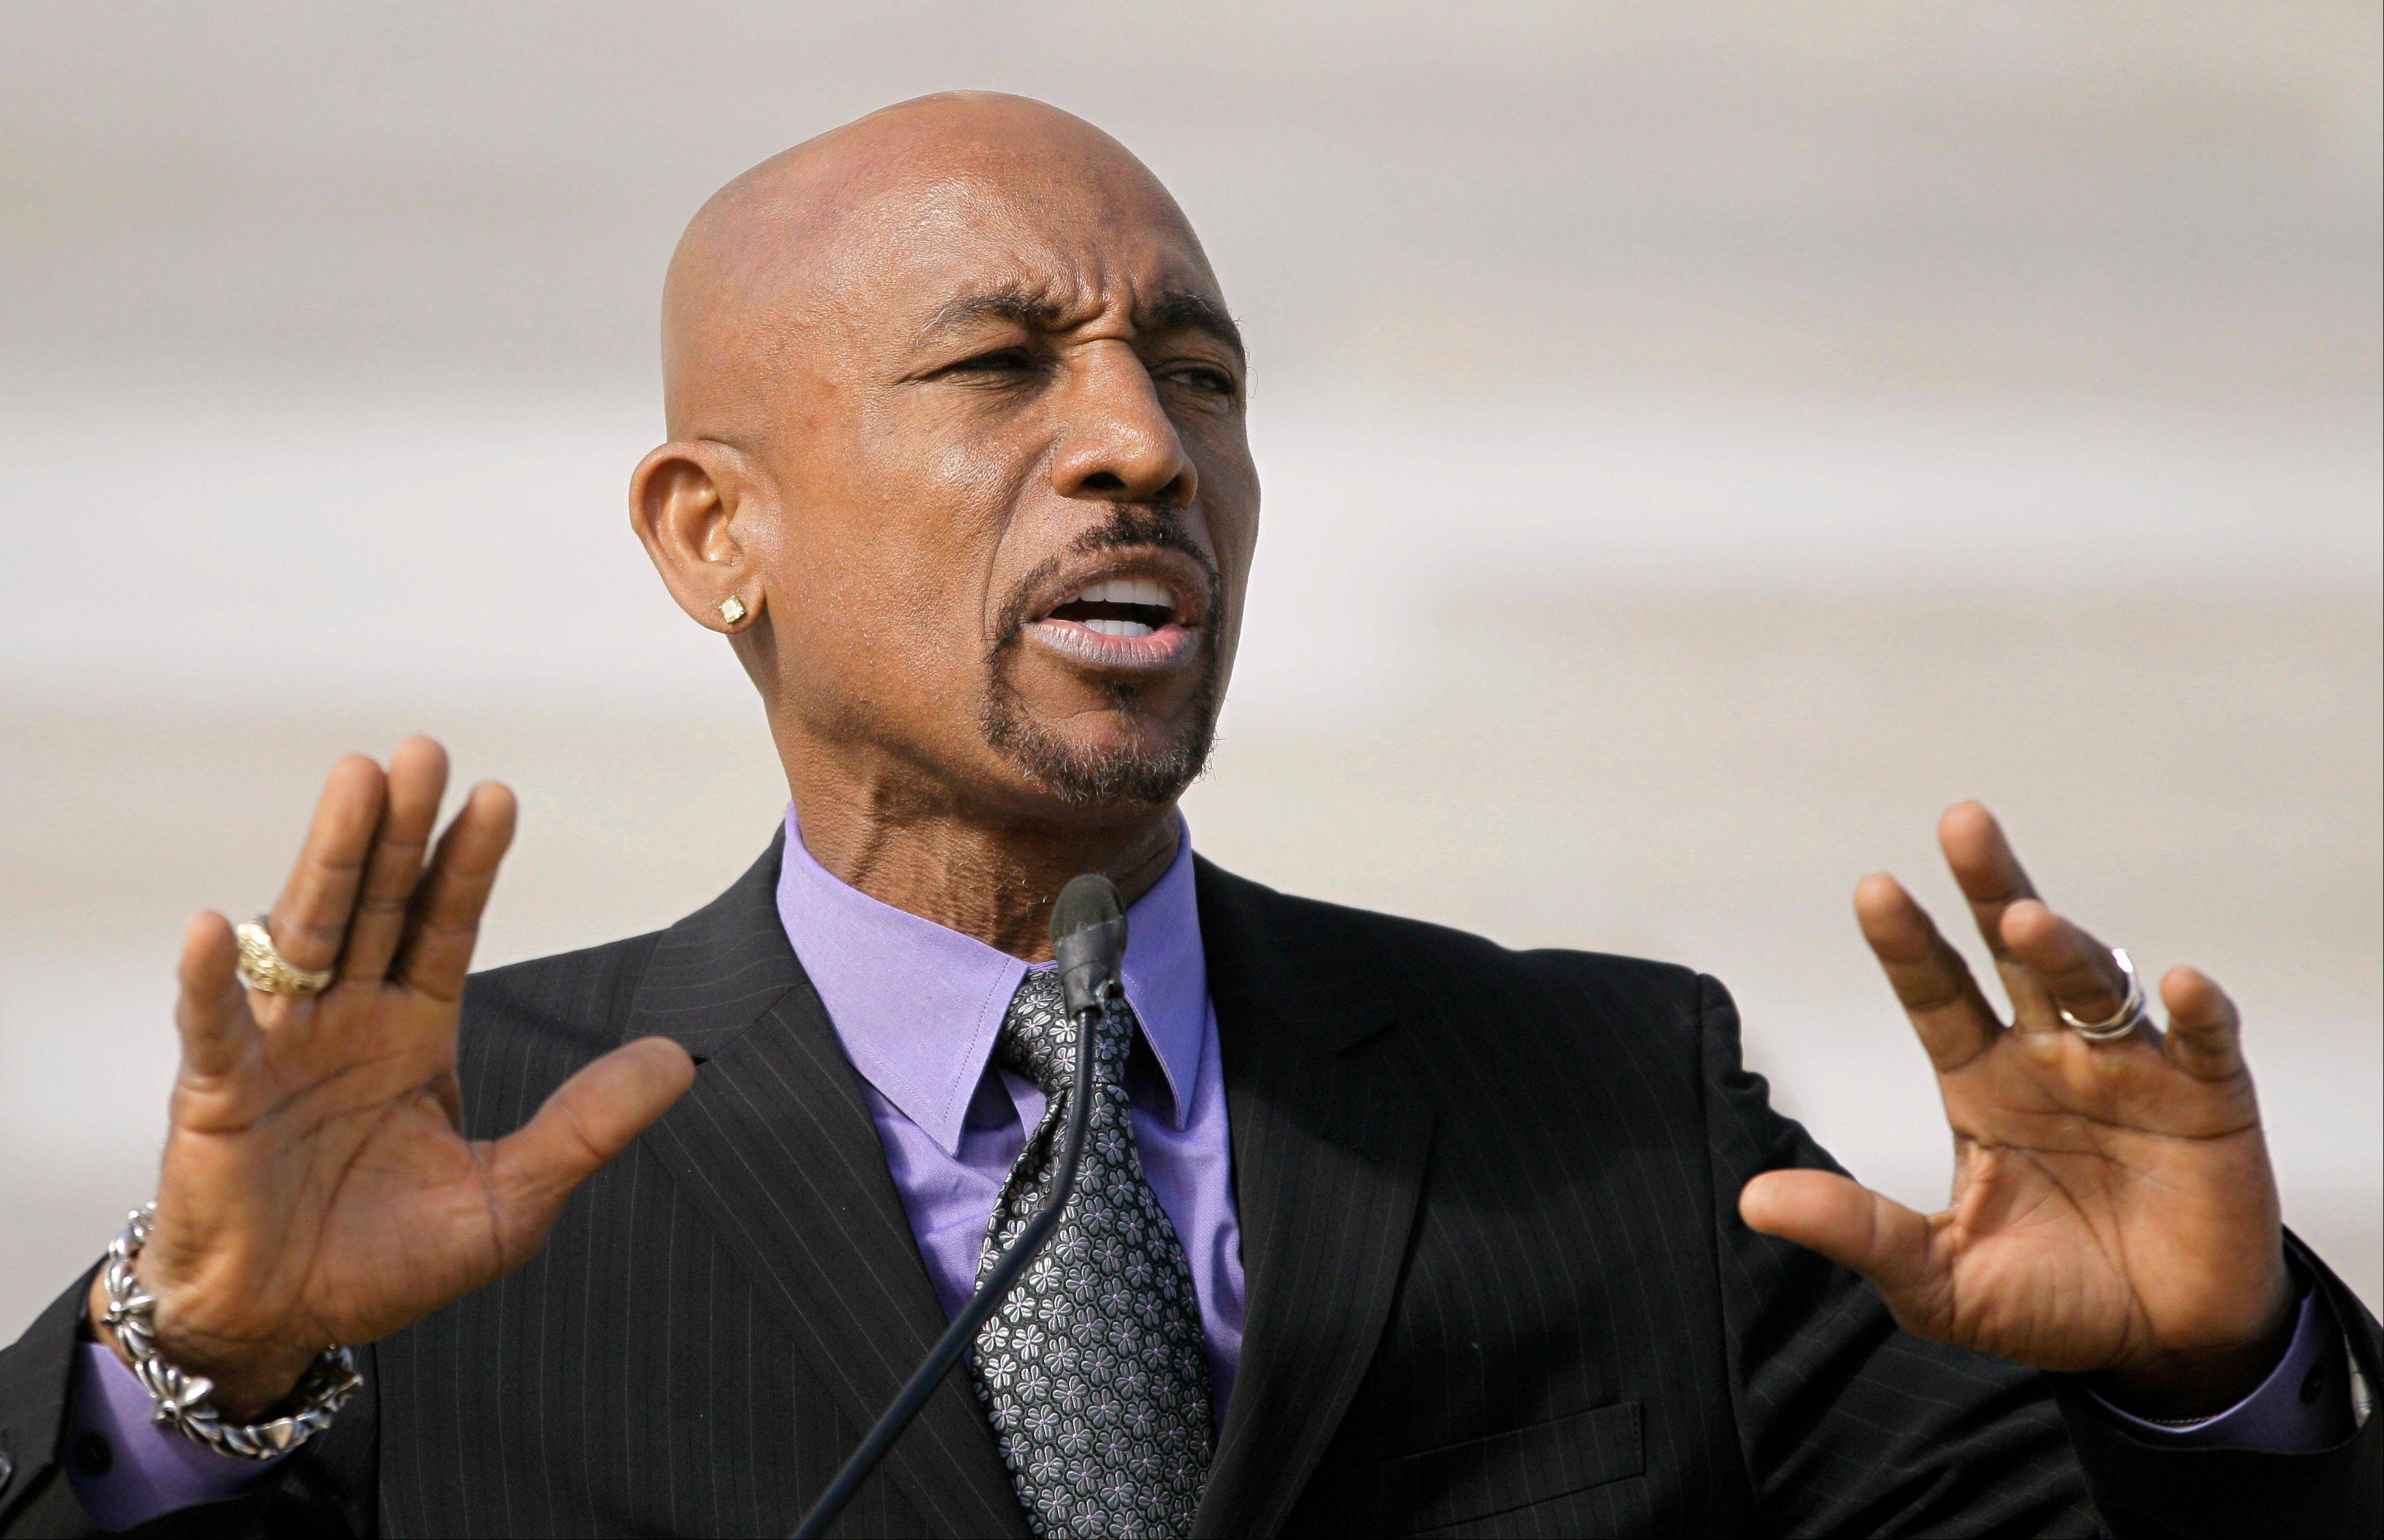 Television personality Montel Williams speaks to supporters of a ballot measure that would legalize medical marijuana in Arkansas.